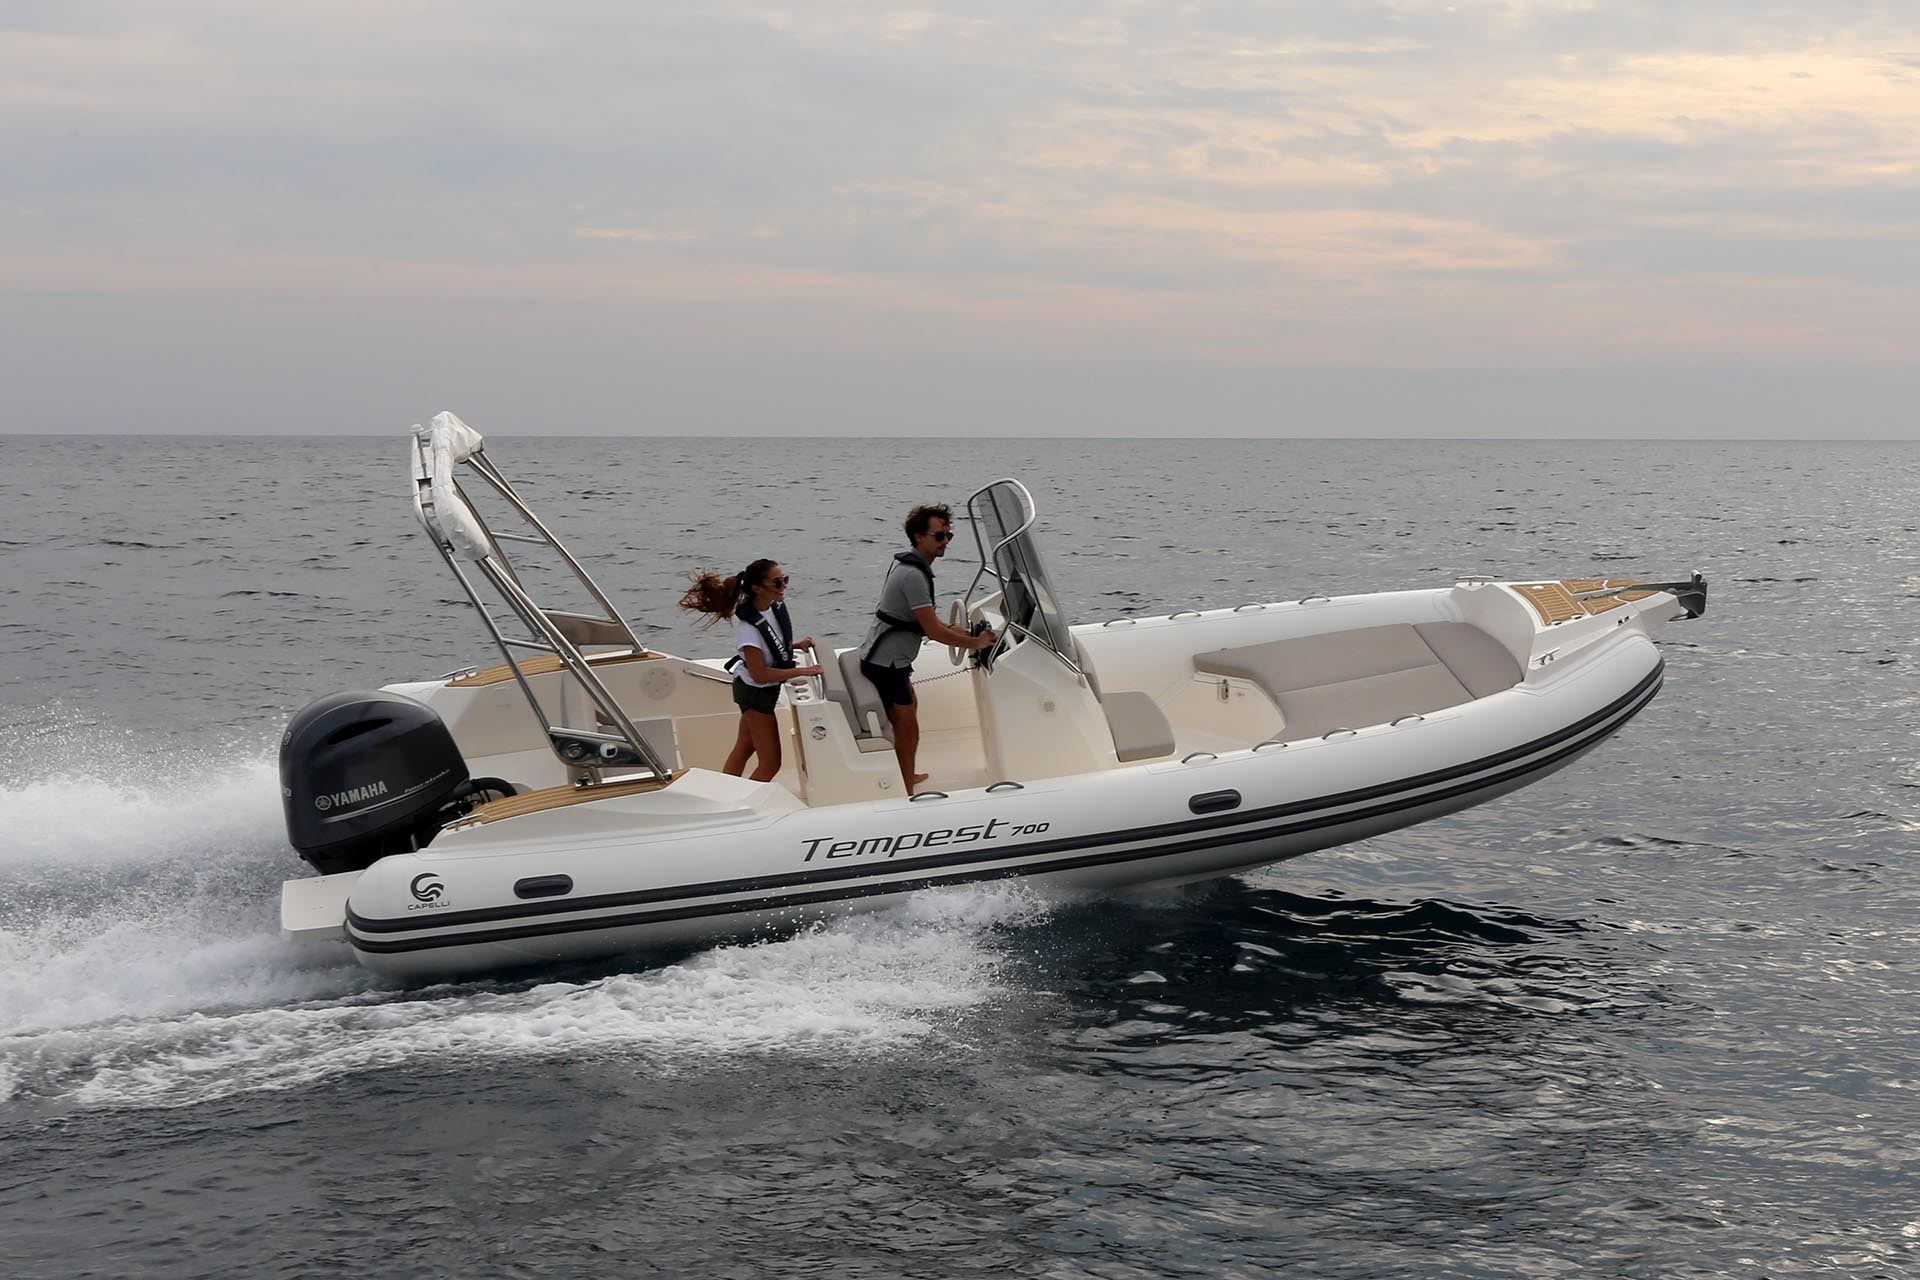 Capelli Tempest 700 on the water driving